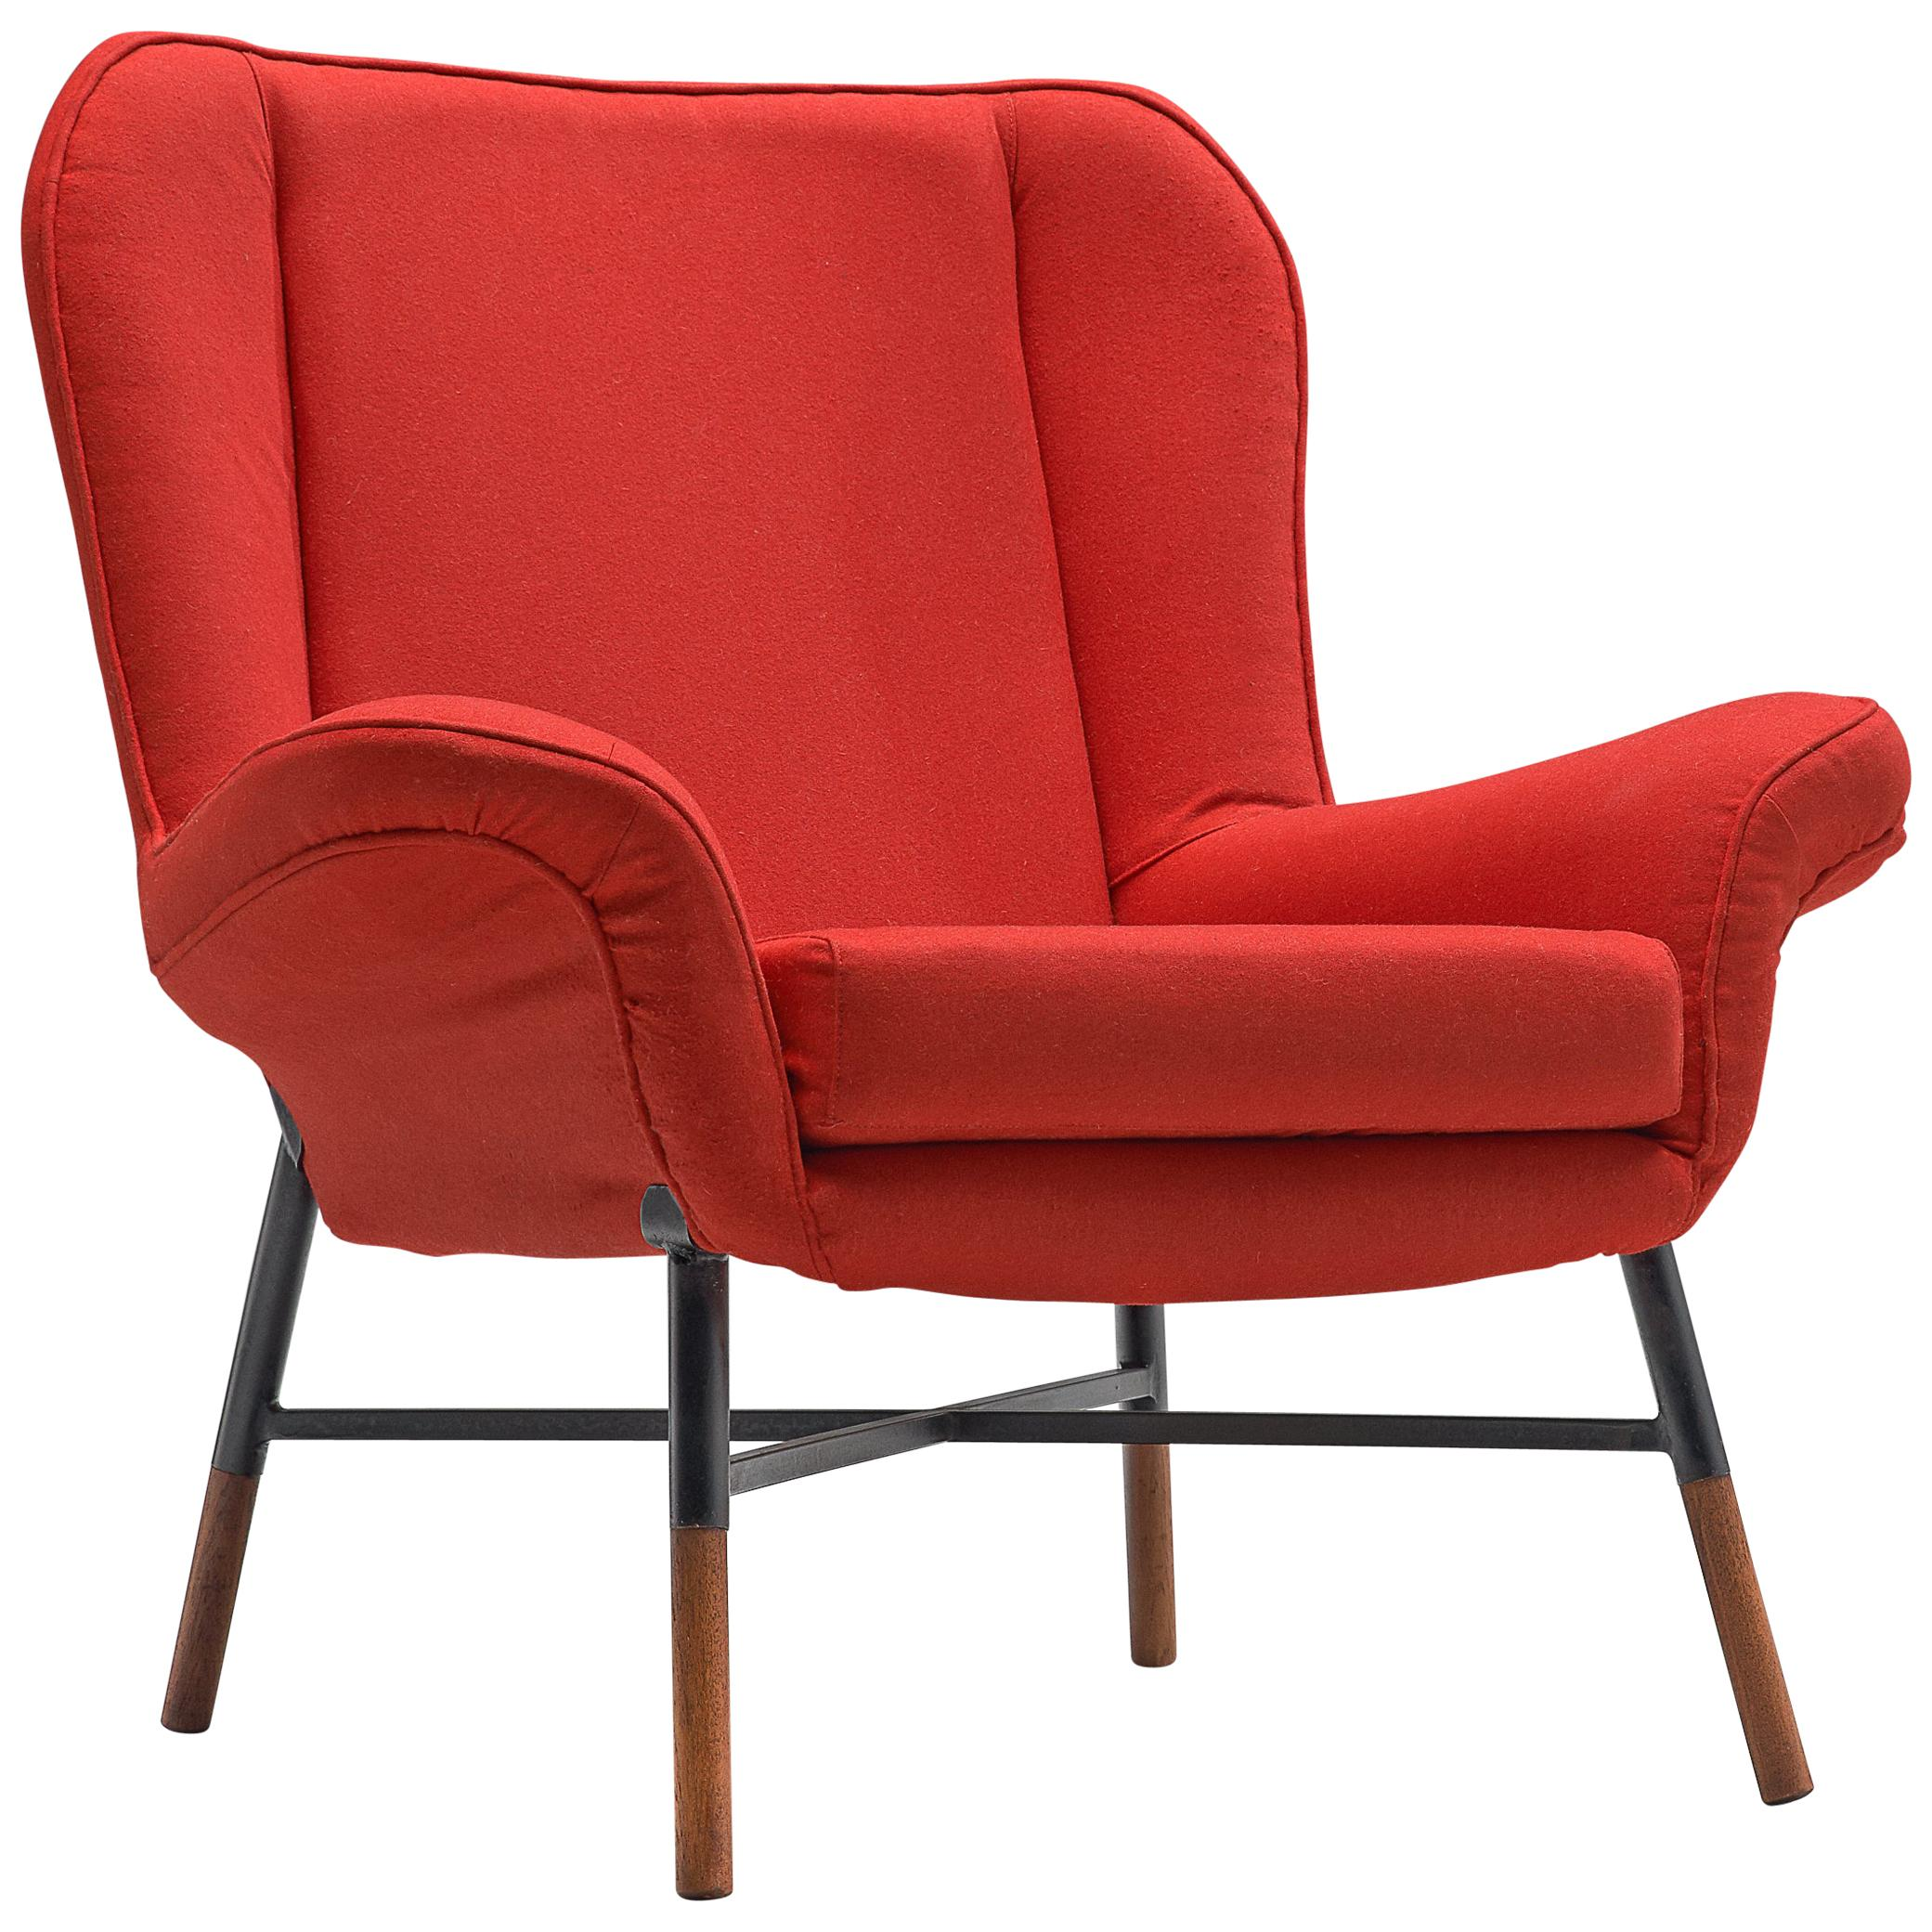 First Edition BBPR 'Giulietta' Lounge Chair in Red Upholstery